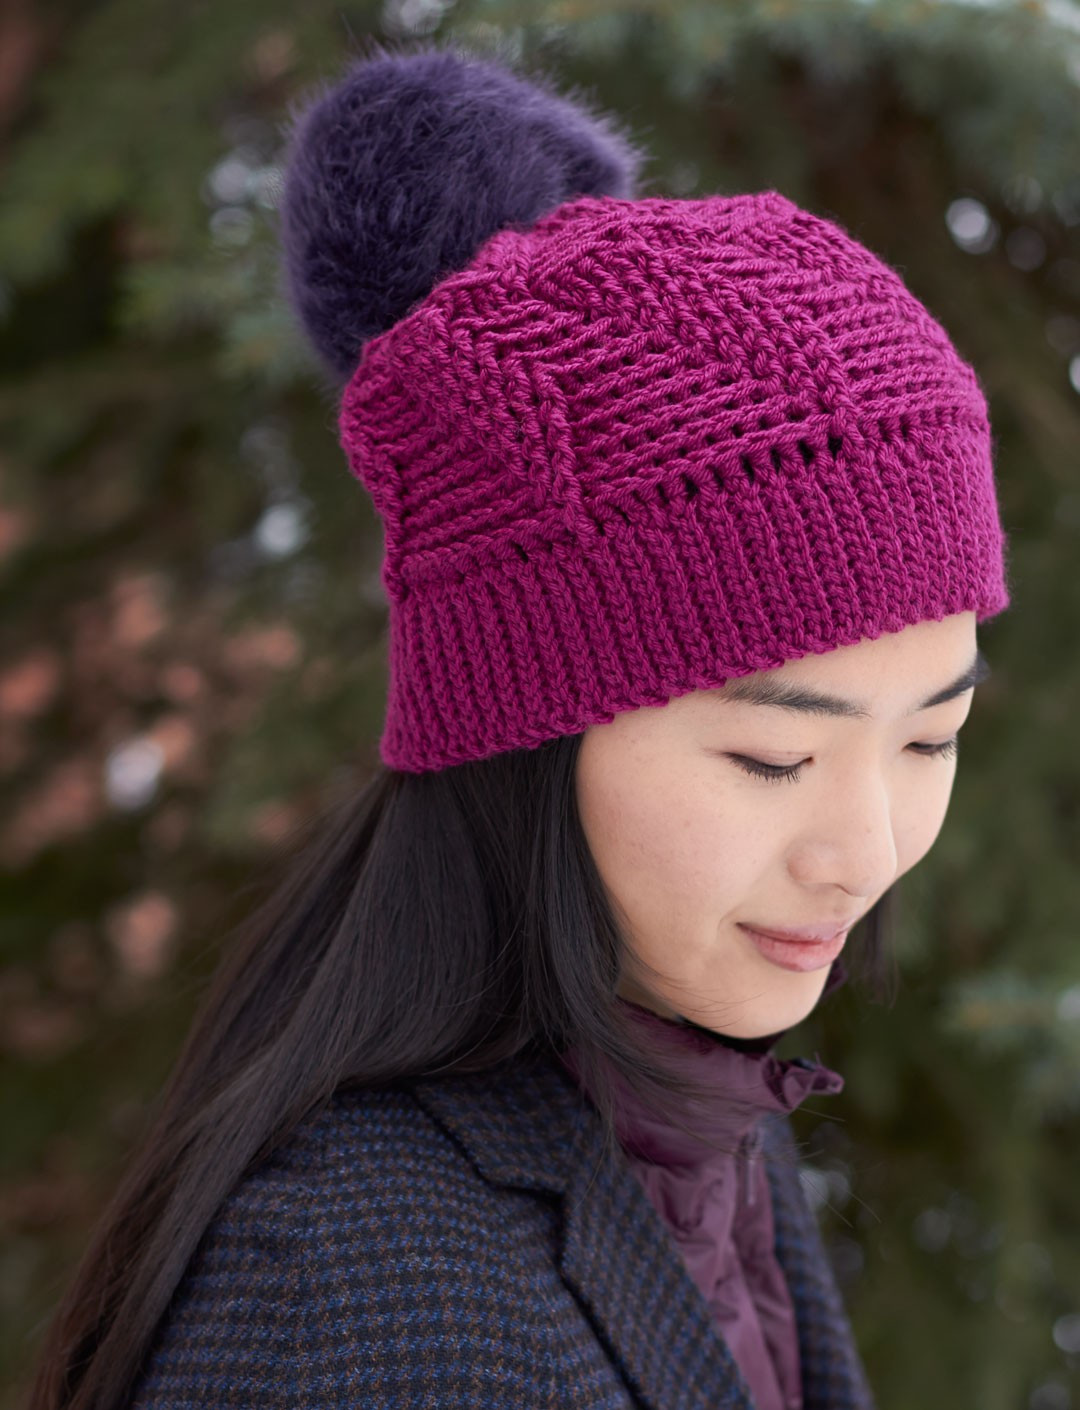 Awesome Patons Twist N Shout Slouchy Hat Crochet Pattern Patons Yarn Patterns Of Adorable 48 Images Patons Yarn Patterns